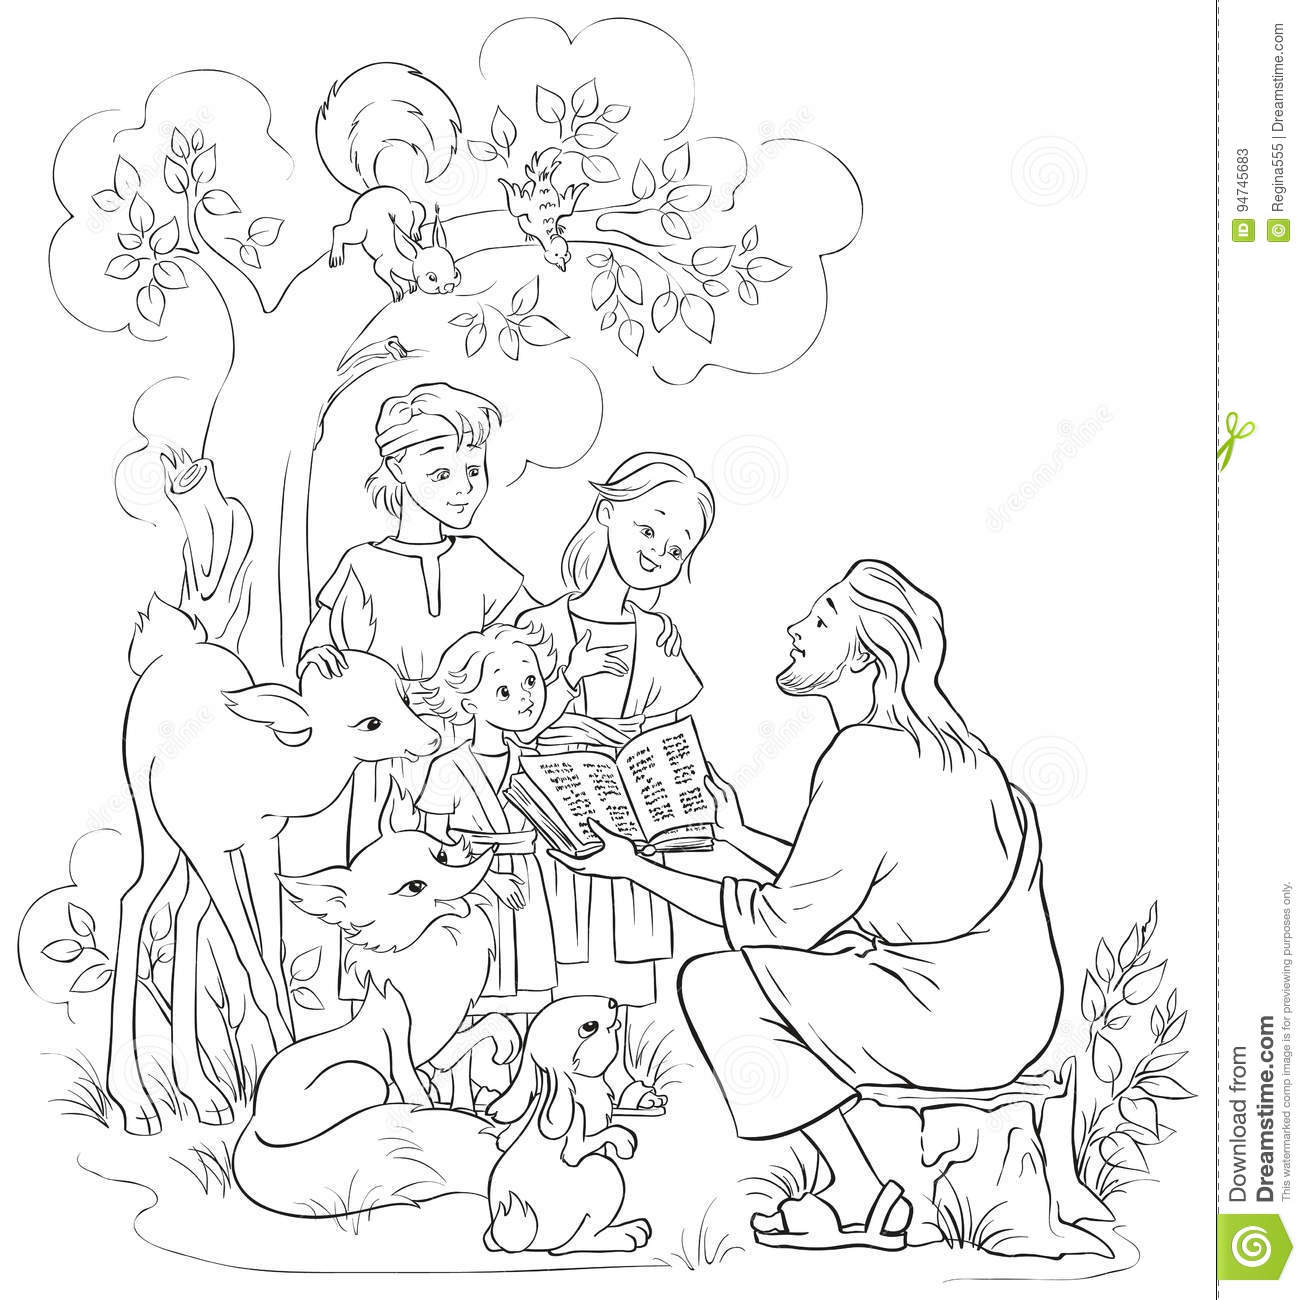 jesus reading the bible to children and animals coloring page